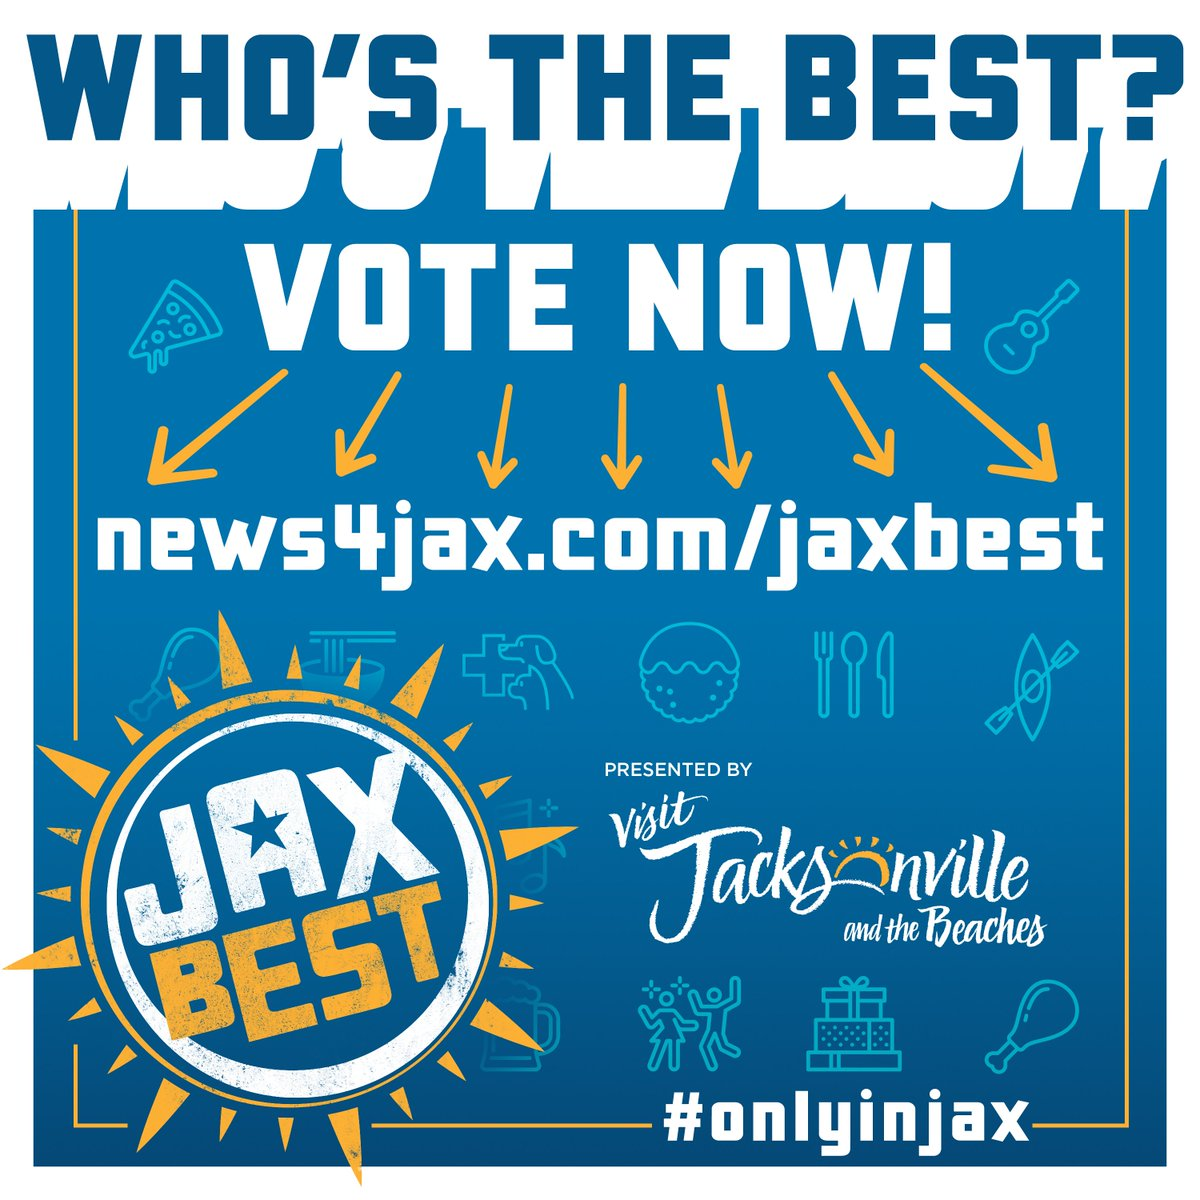 test Twitter Media - Ask a Local->When you have a visitor in Jax, where do you take them? Let us know and go vote for your favorite spot in the #JaxBest campaign! @wjxt4  #onlyinjax #visitjacksonville #lovefl https://t.co/vH6uKgVLXc https://t.co/LkoiXcsgZE